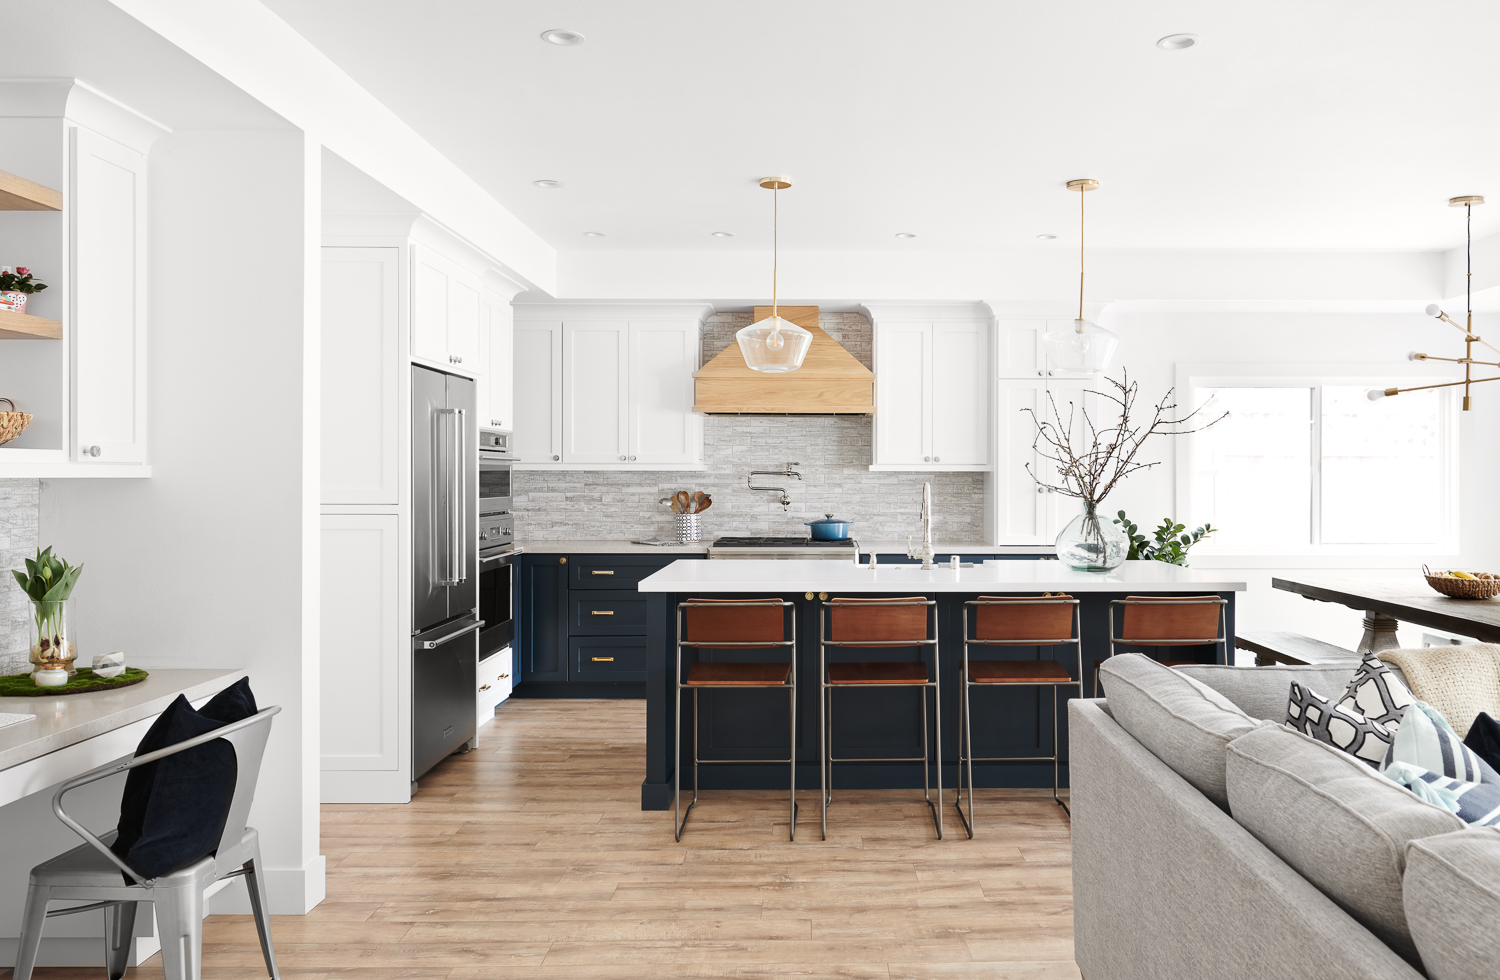 KBG Design open layout kitchen and family room